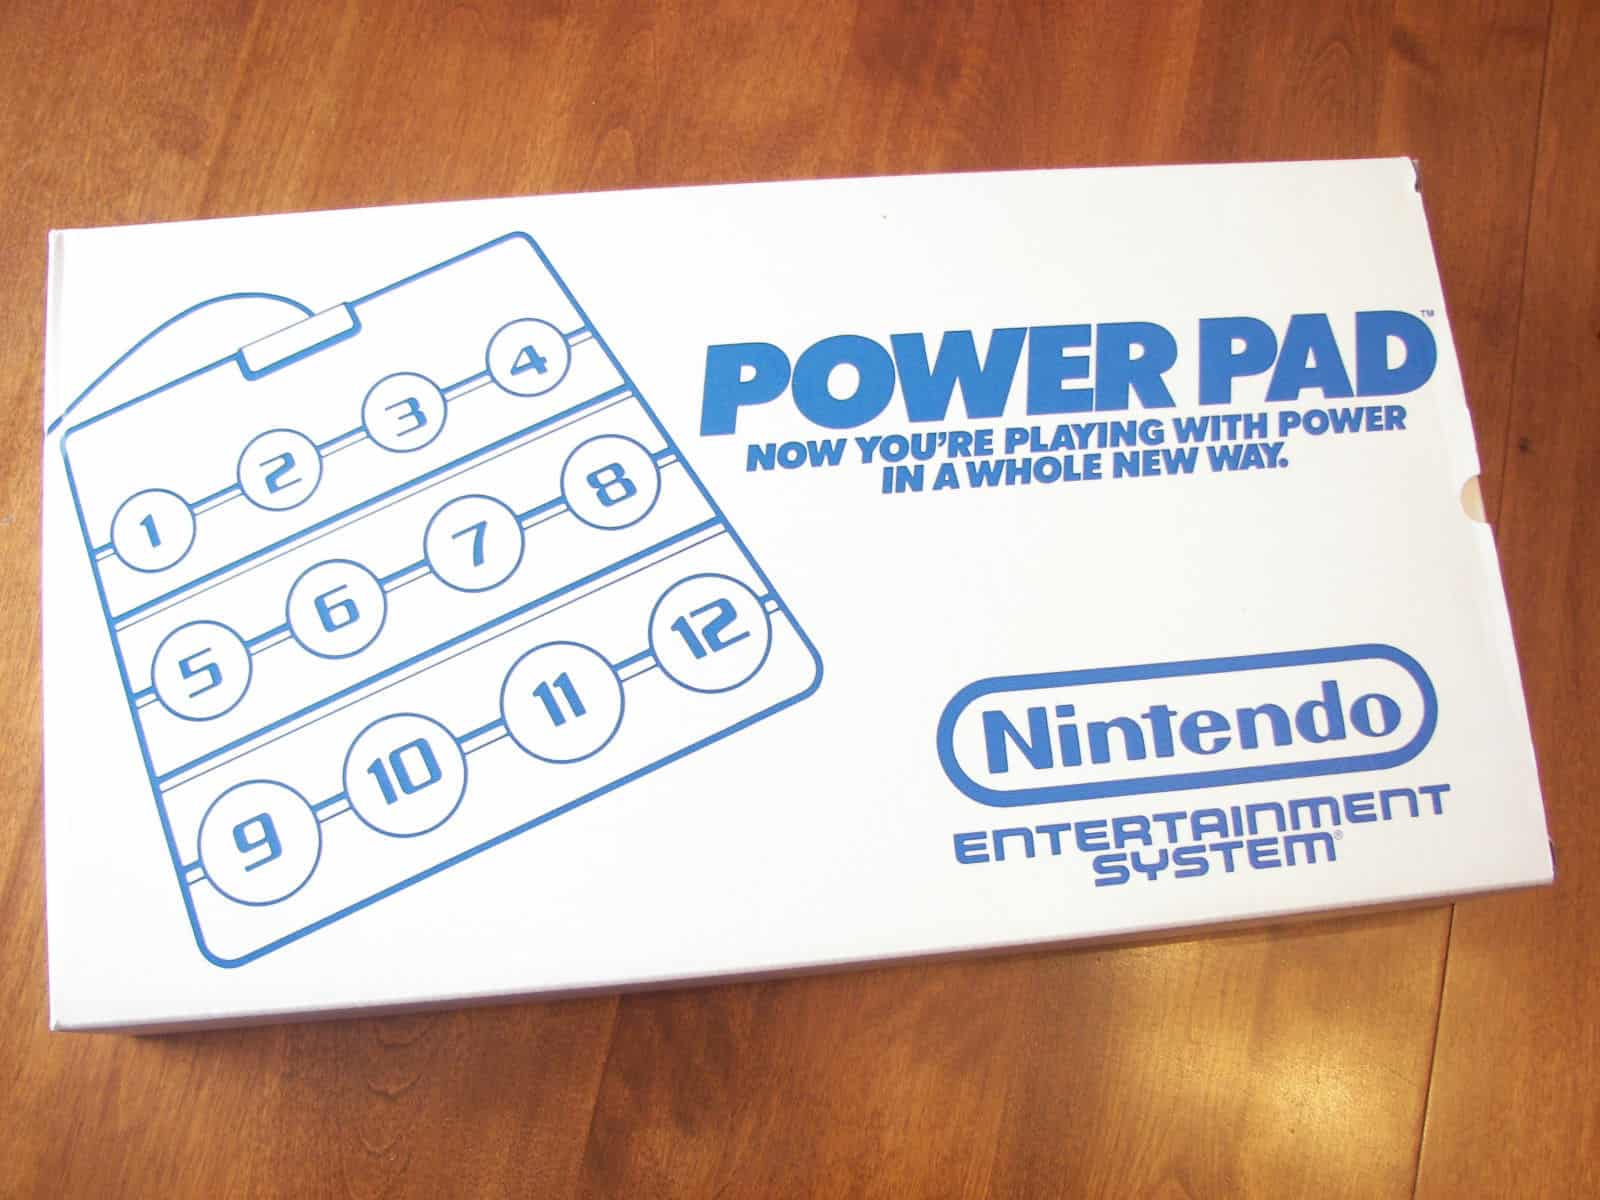 a picture of a power pad for nes power set